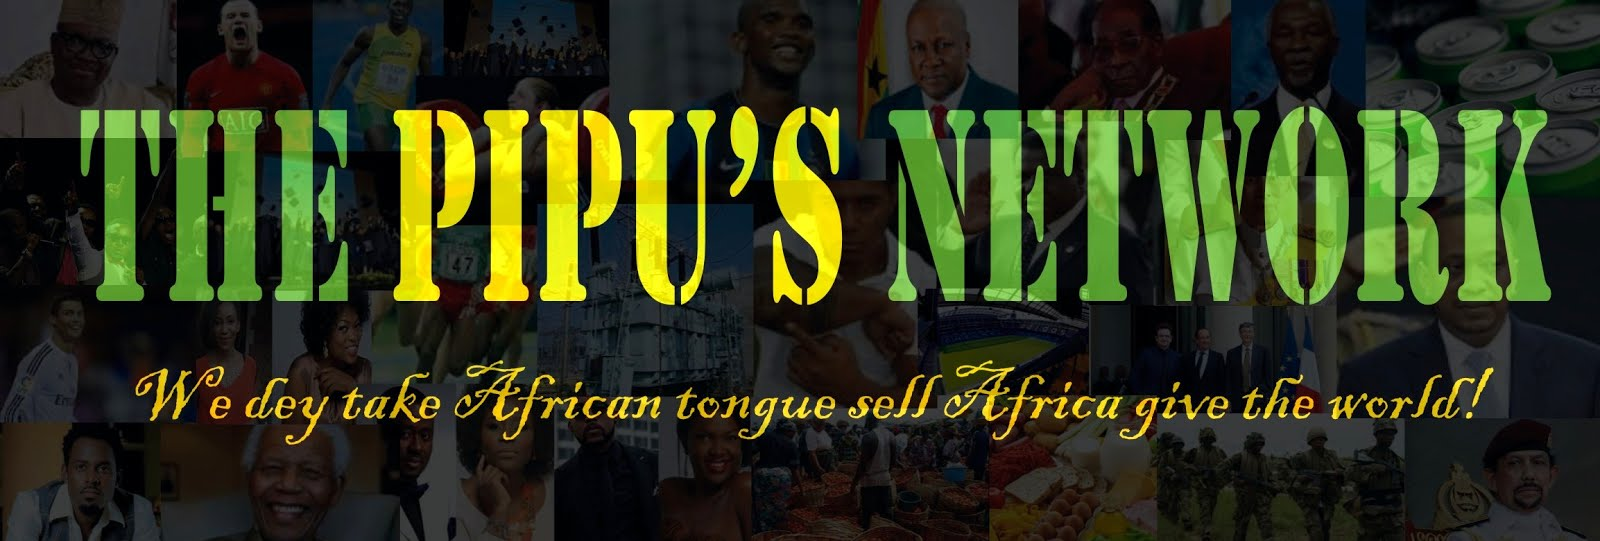 THE PIPU39S NETWORK INA LILAHIDEM SAY NA LIKE 717 PIPU DEM DON